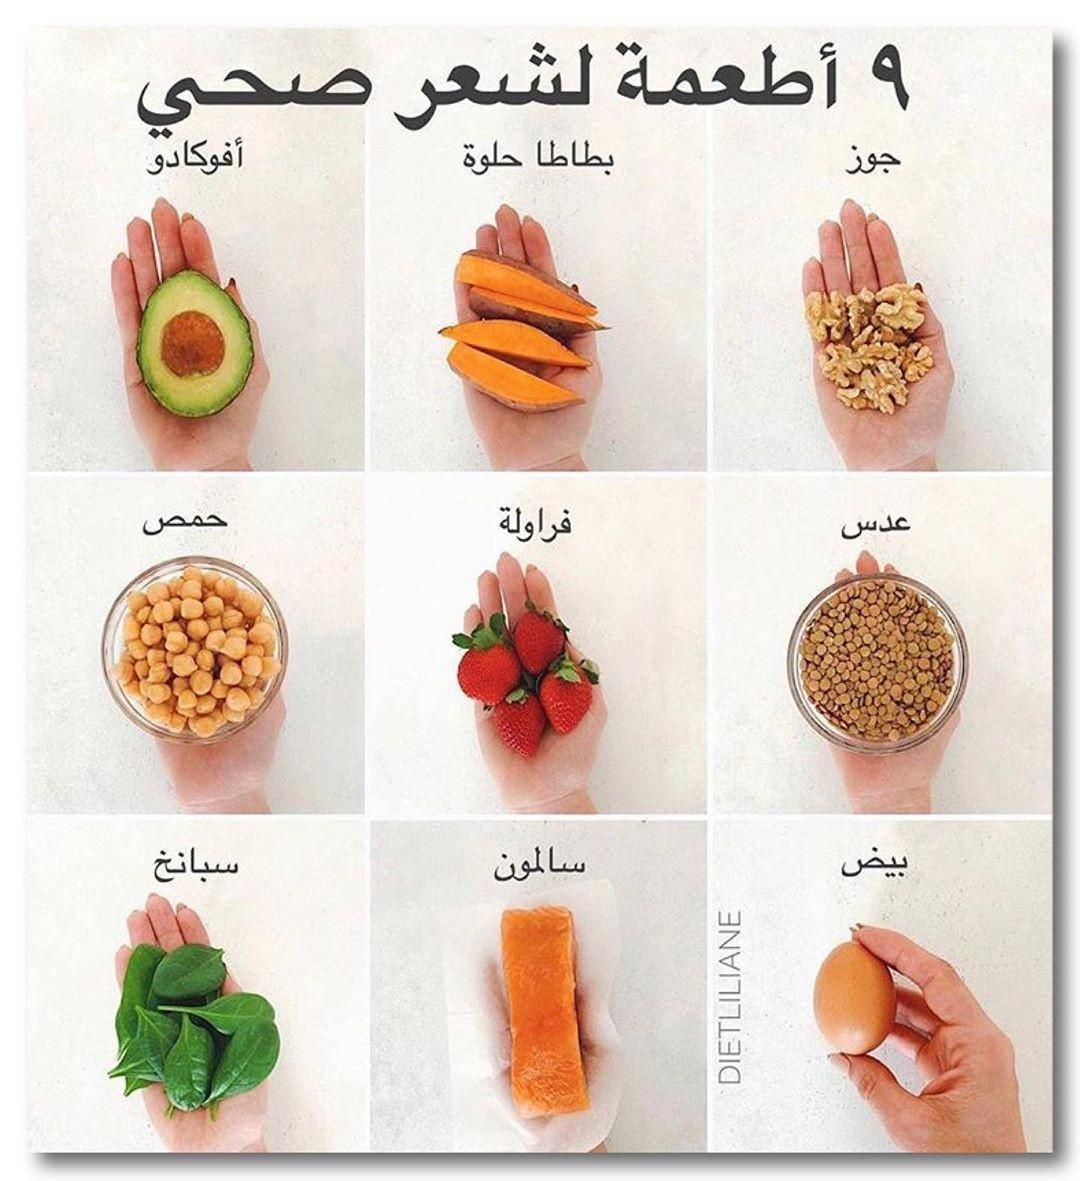 Pin By Ameera Altobasi On صحتك Helthy Food Food Health Routine